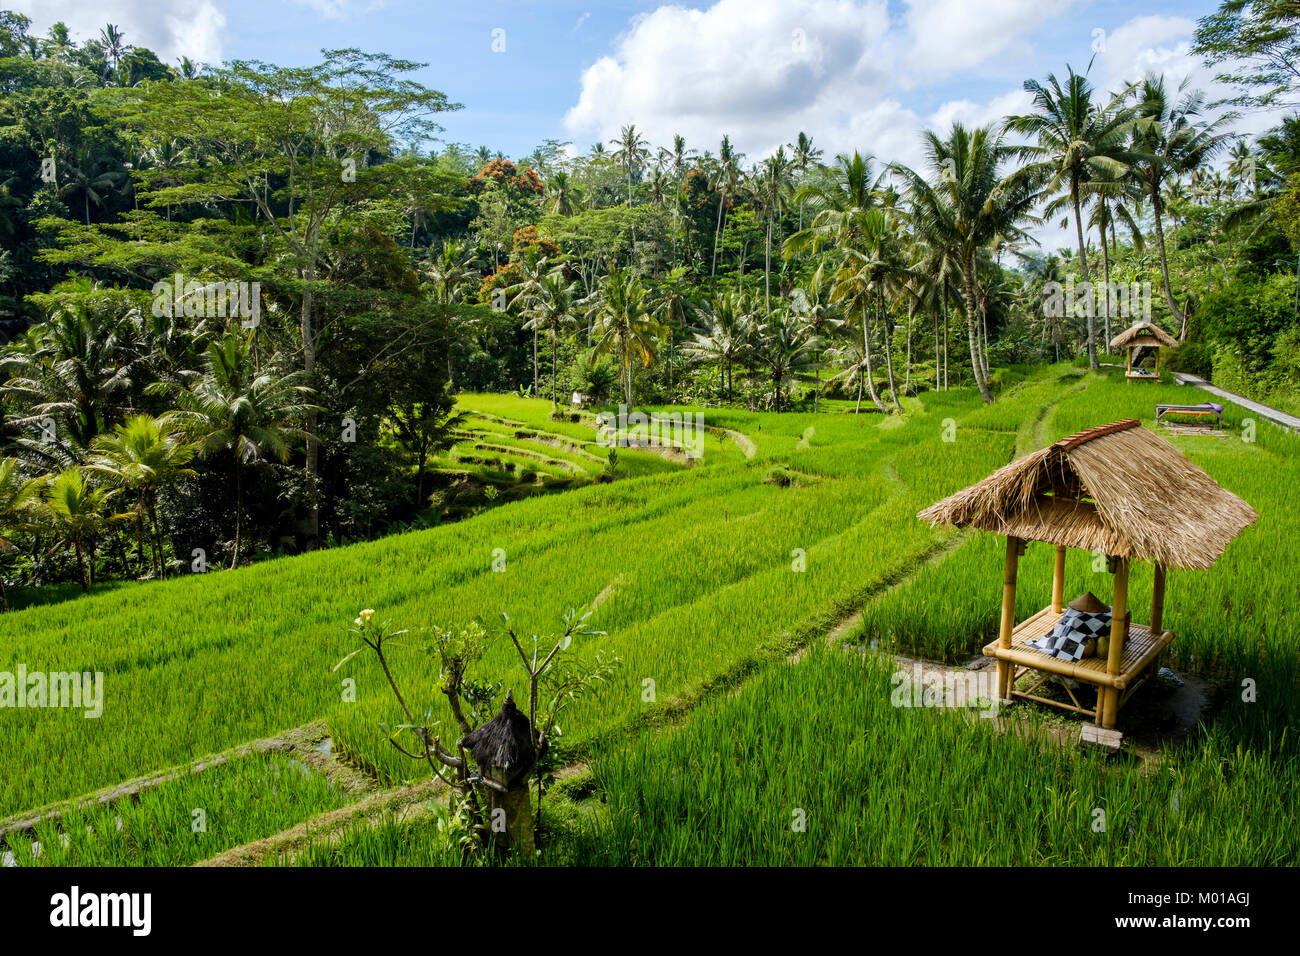 A hut in the middle of rice terraces at Gunung Kawi Temple complex in Tampaksiring, Bali, Indonesia. - Stock Image